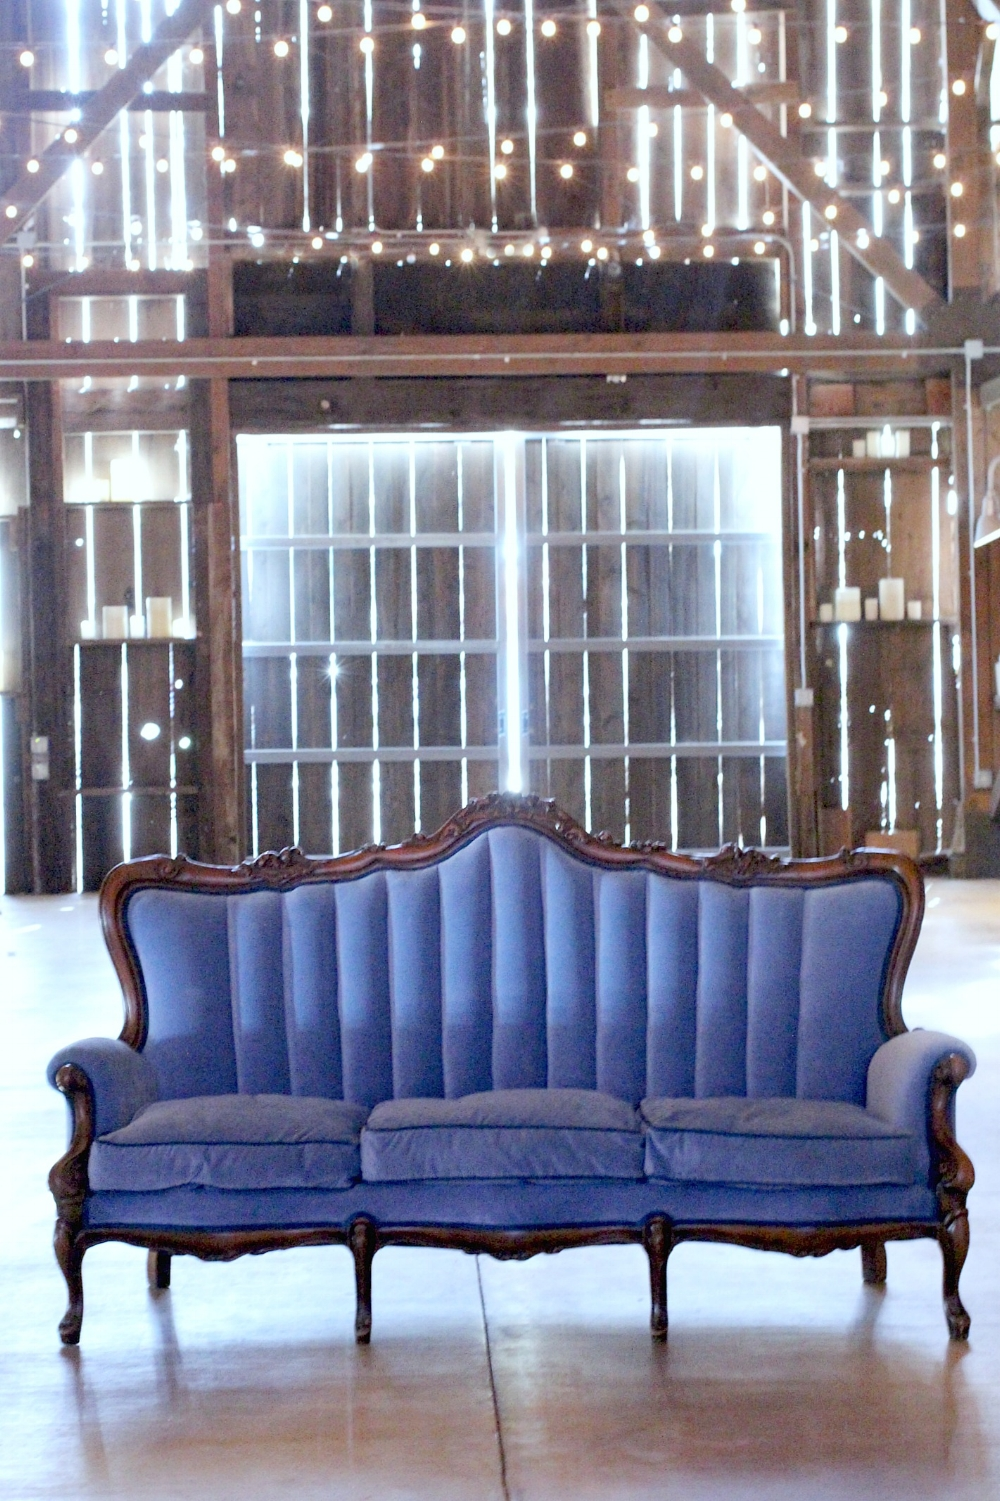 Oak farm Vineyards Lodi blue velvet sofa french provincial vintage wedding rentals